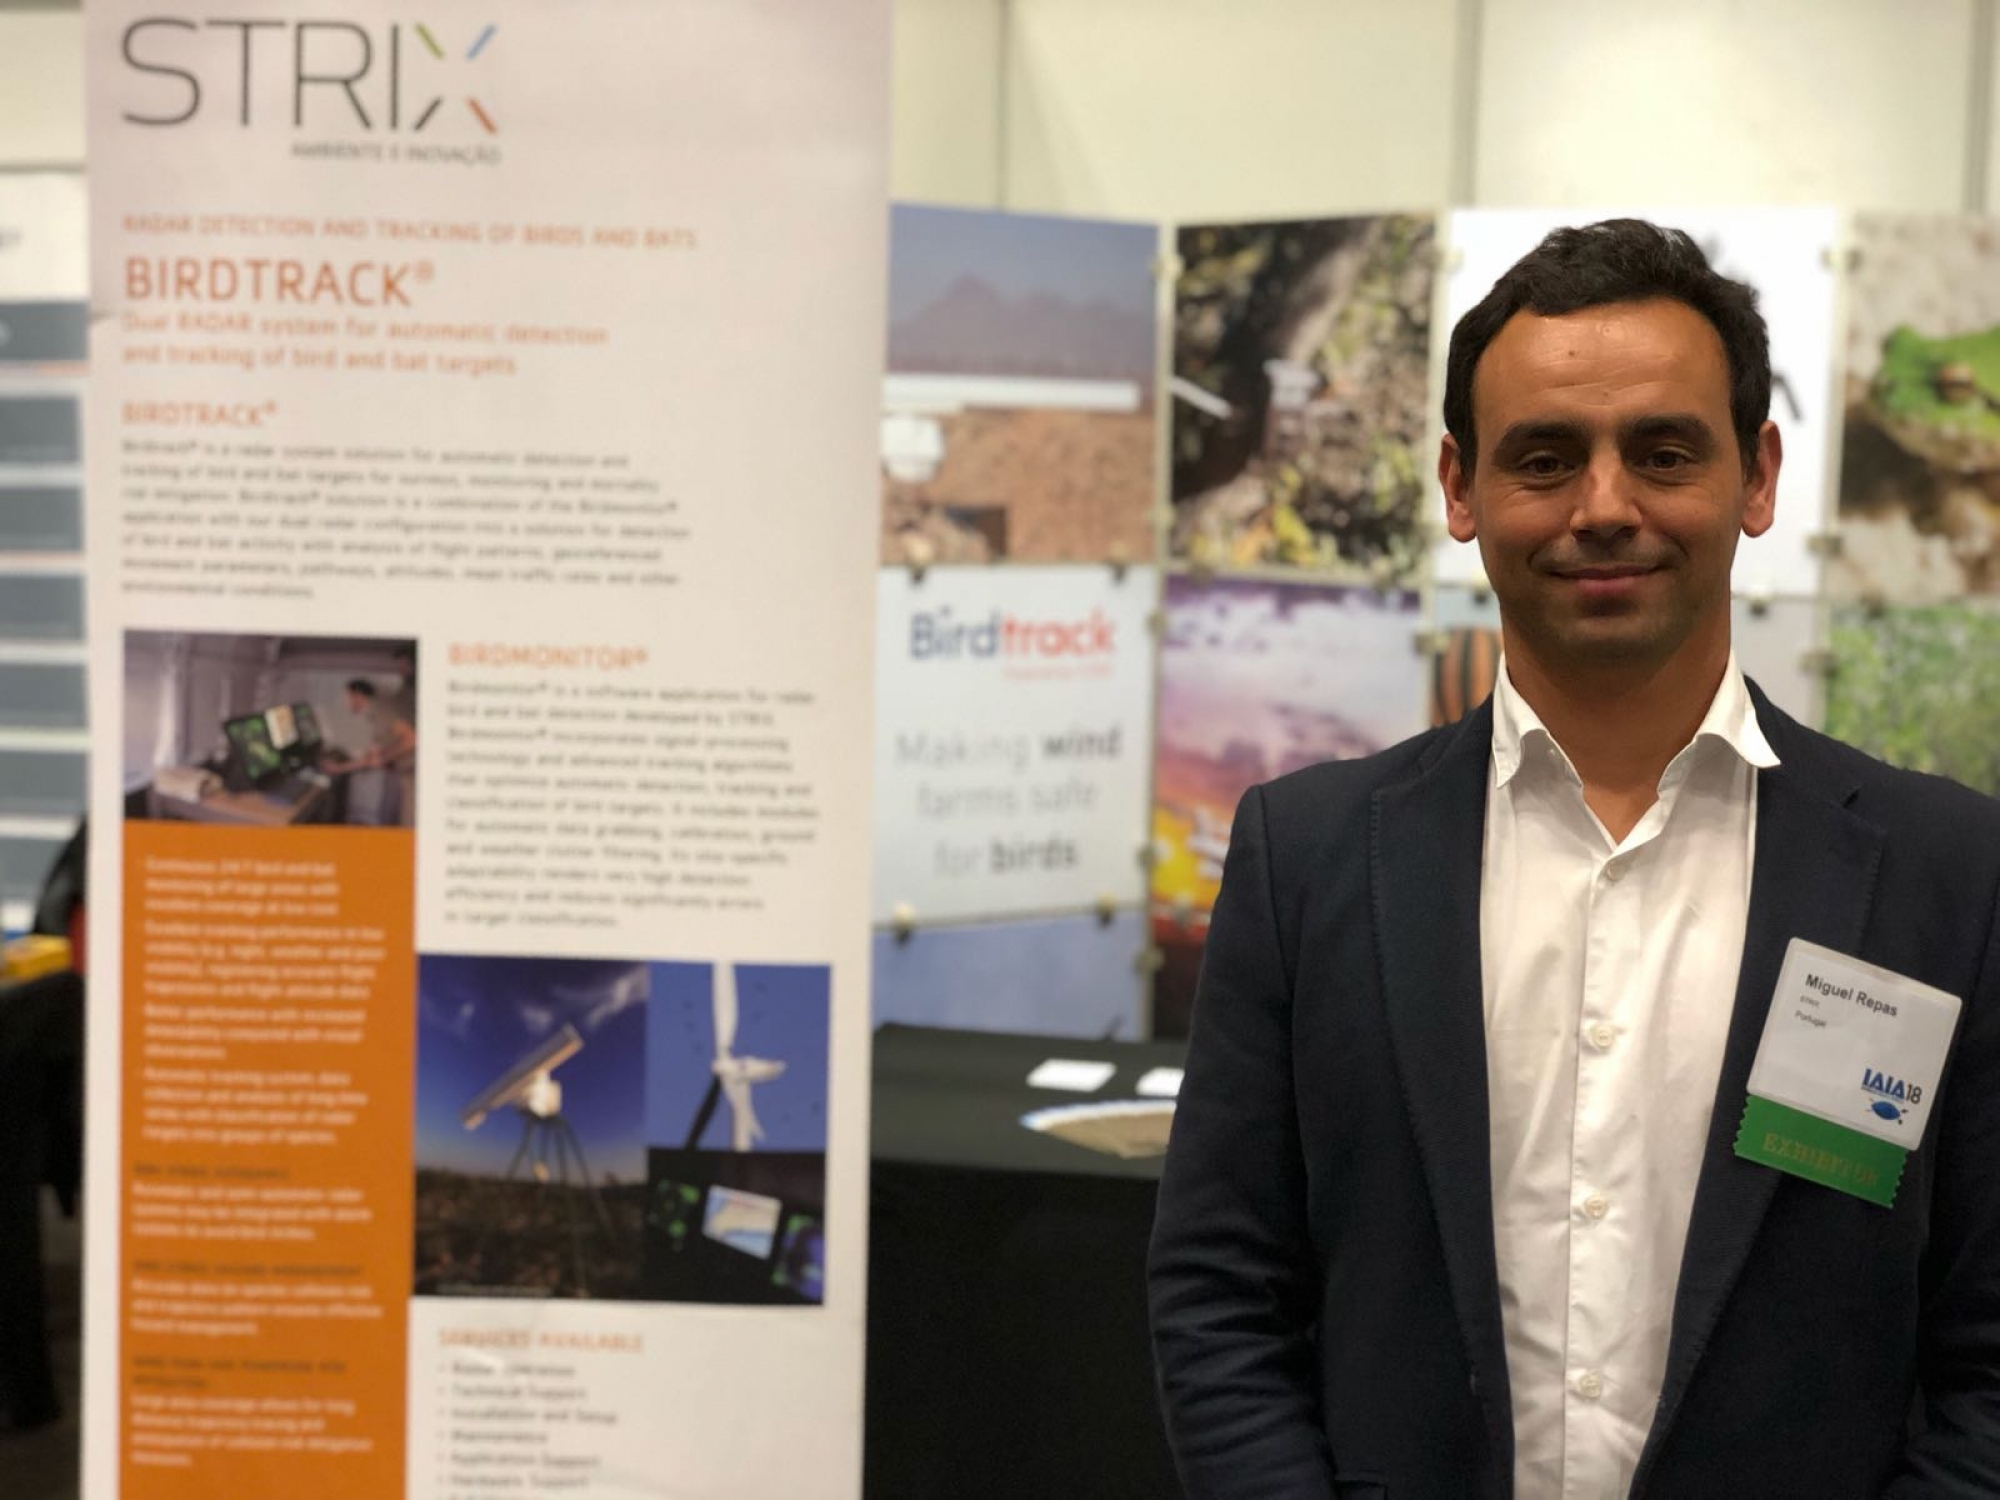 STRIX at IAIA2018, Durban, South Africa